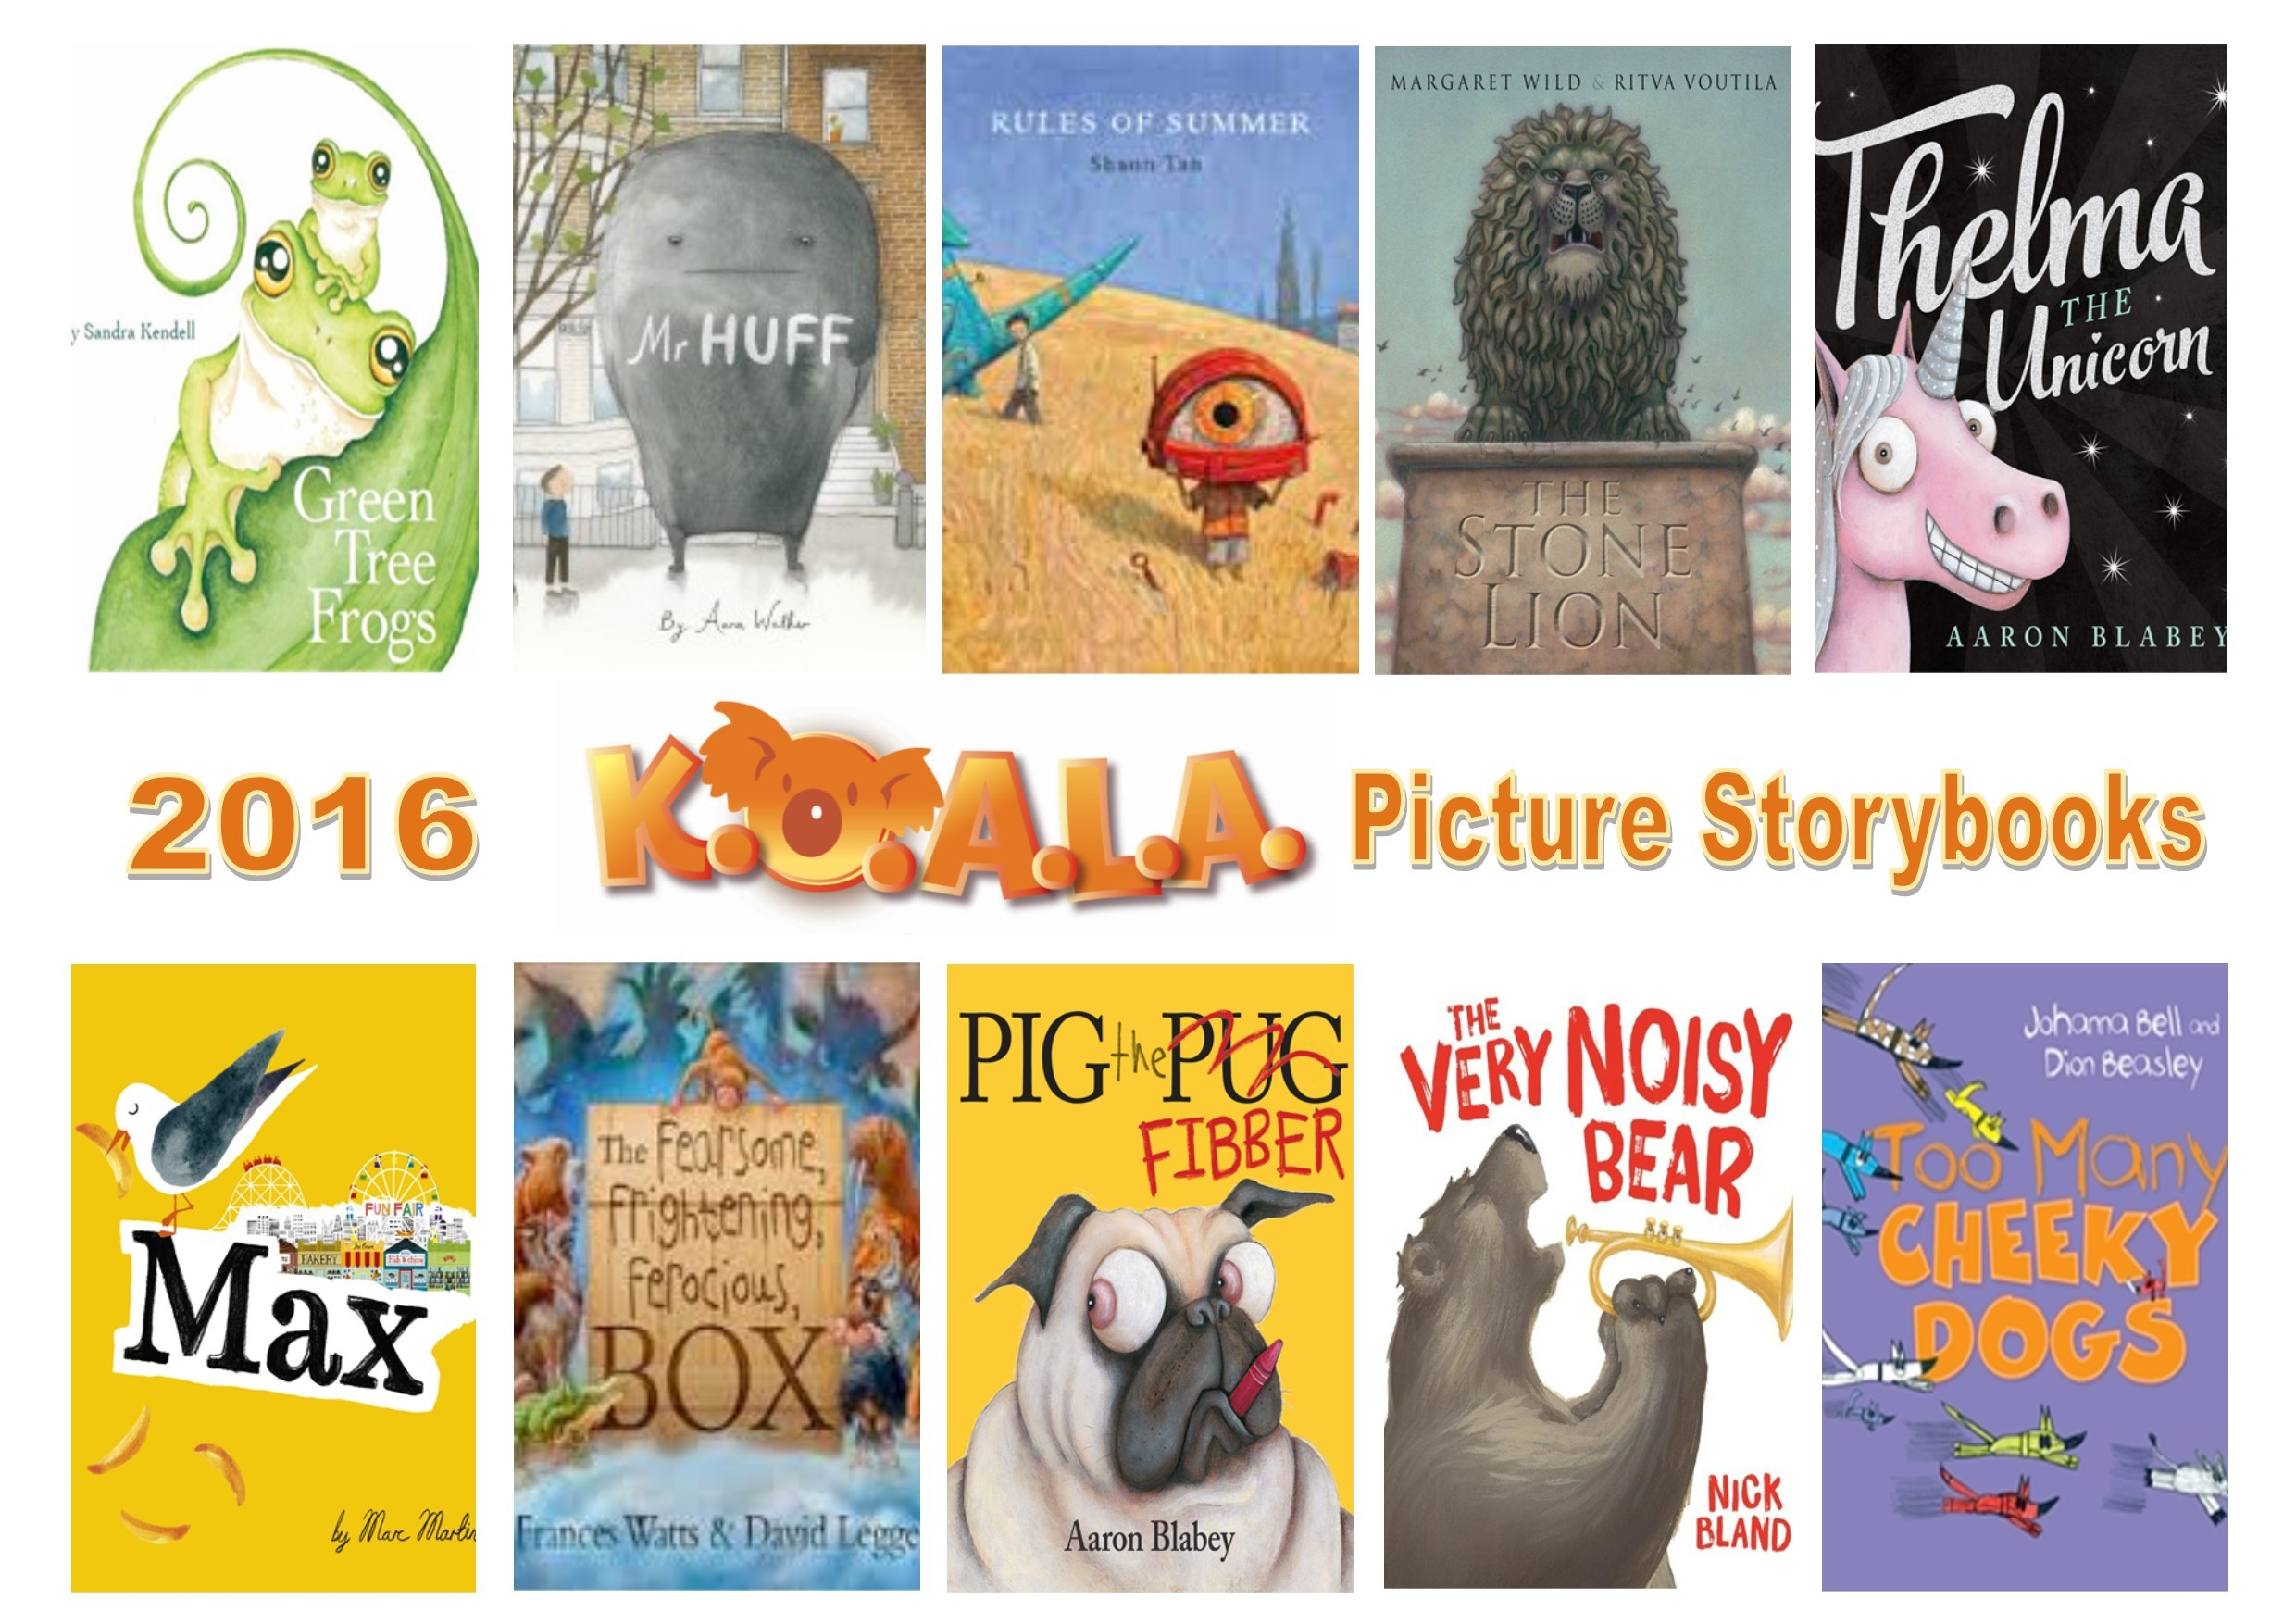 KOALA+Shortlist+Picture+Storybooks+2016.jpg